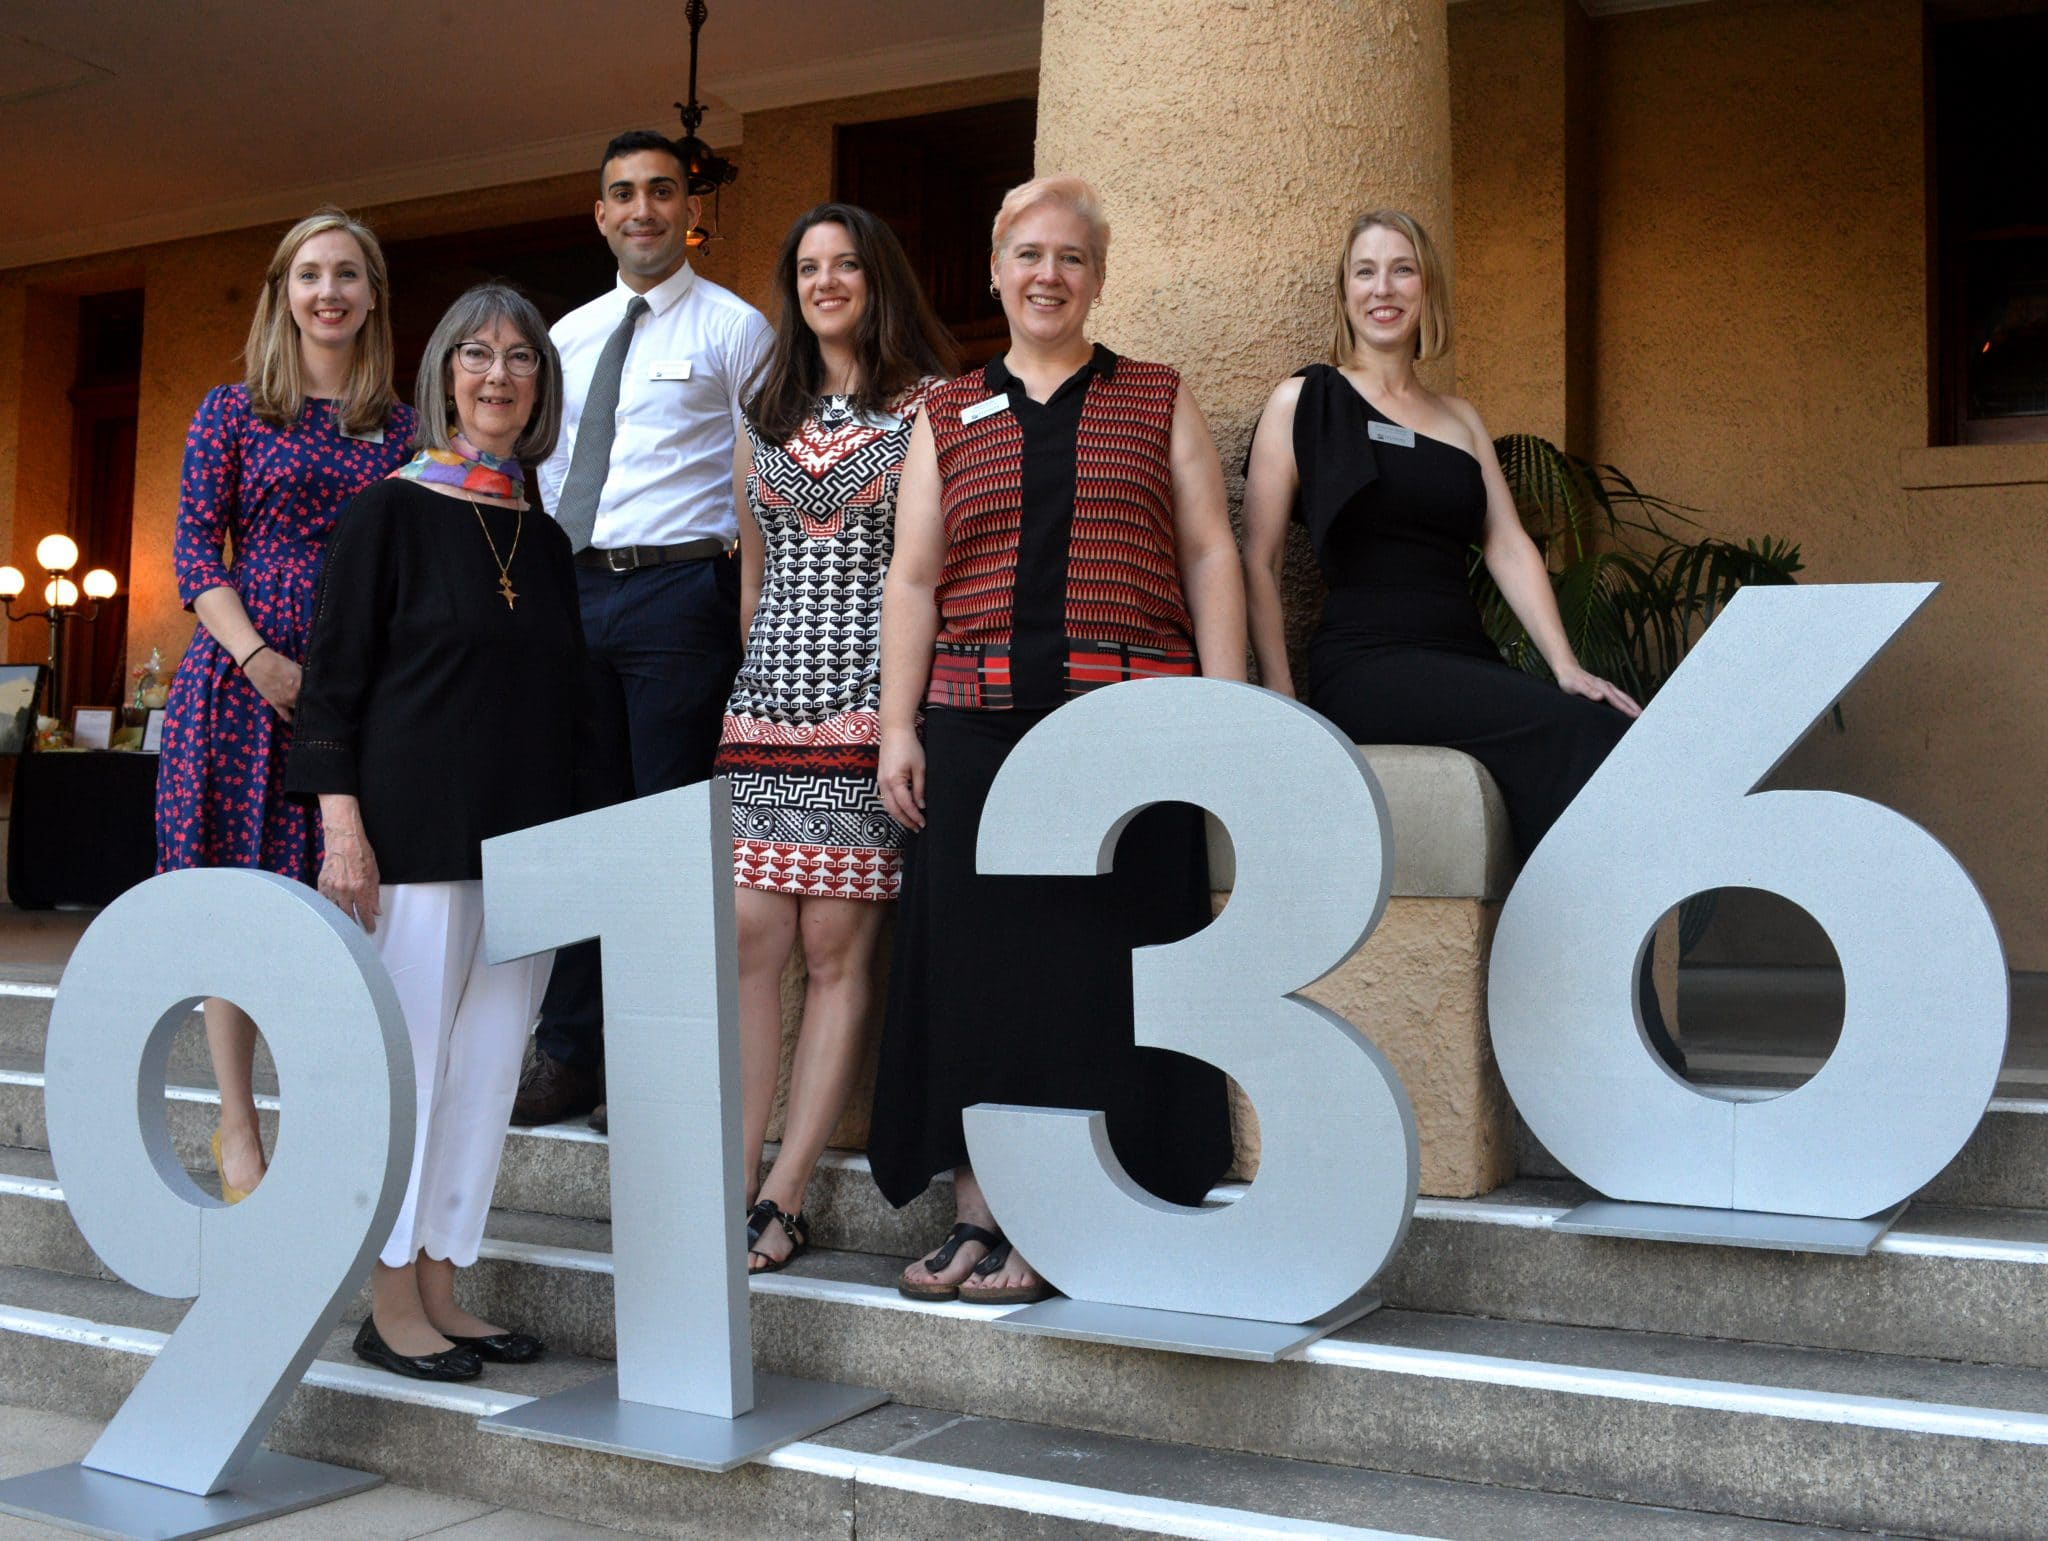 https://pasadenaheritage.org/wp-content/uploads/2019/11/Pasadena-Heritage-Staff-Posing-at-the-9136-DAYS-Celebration.jpg